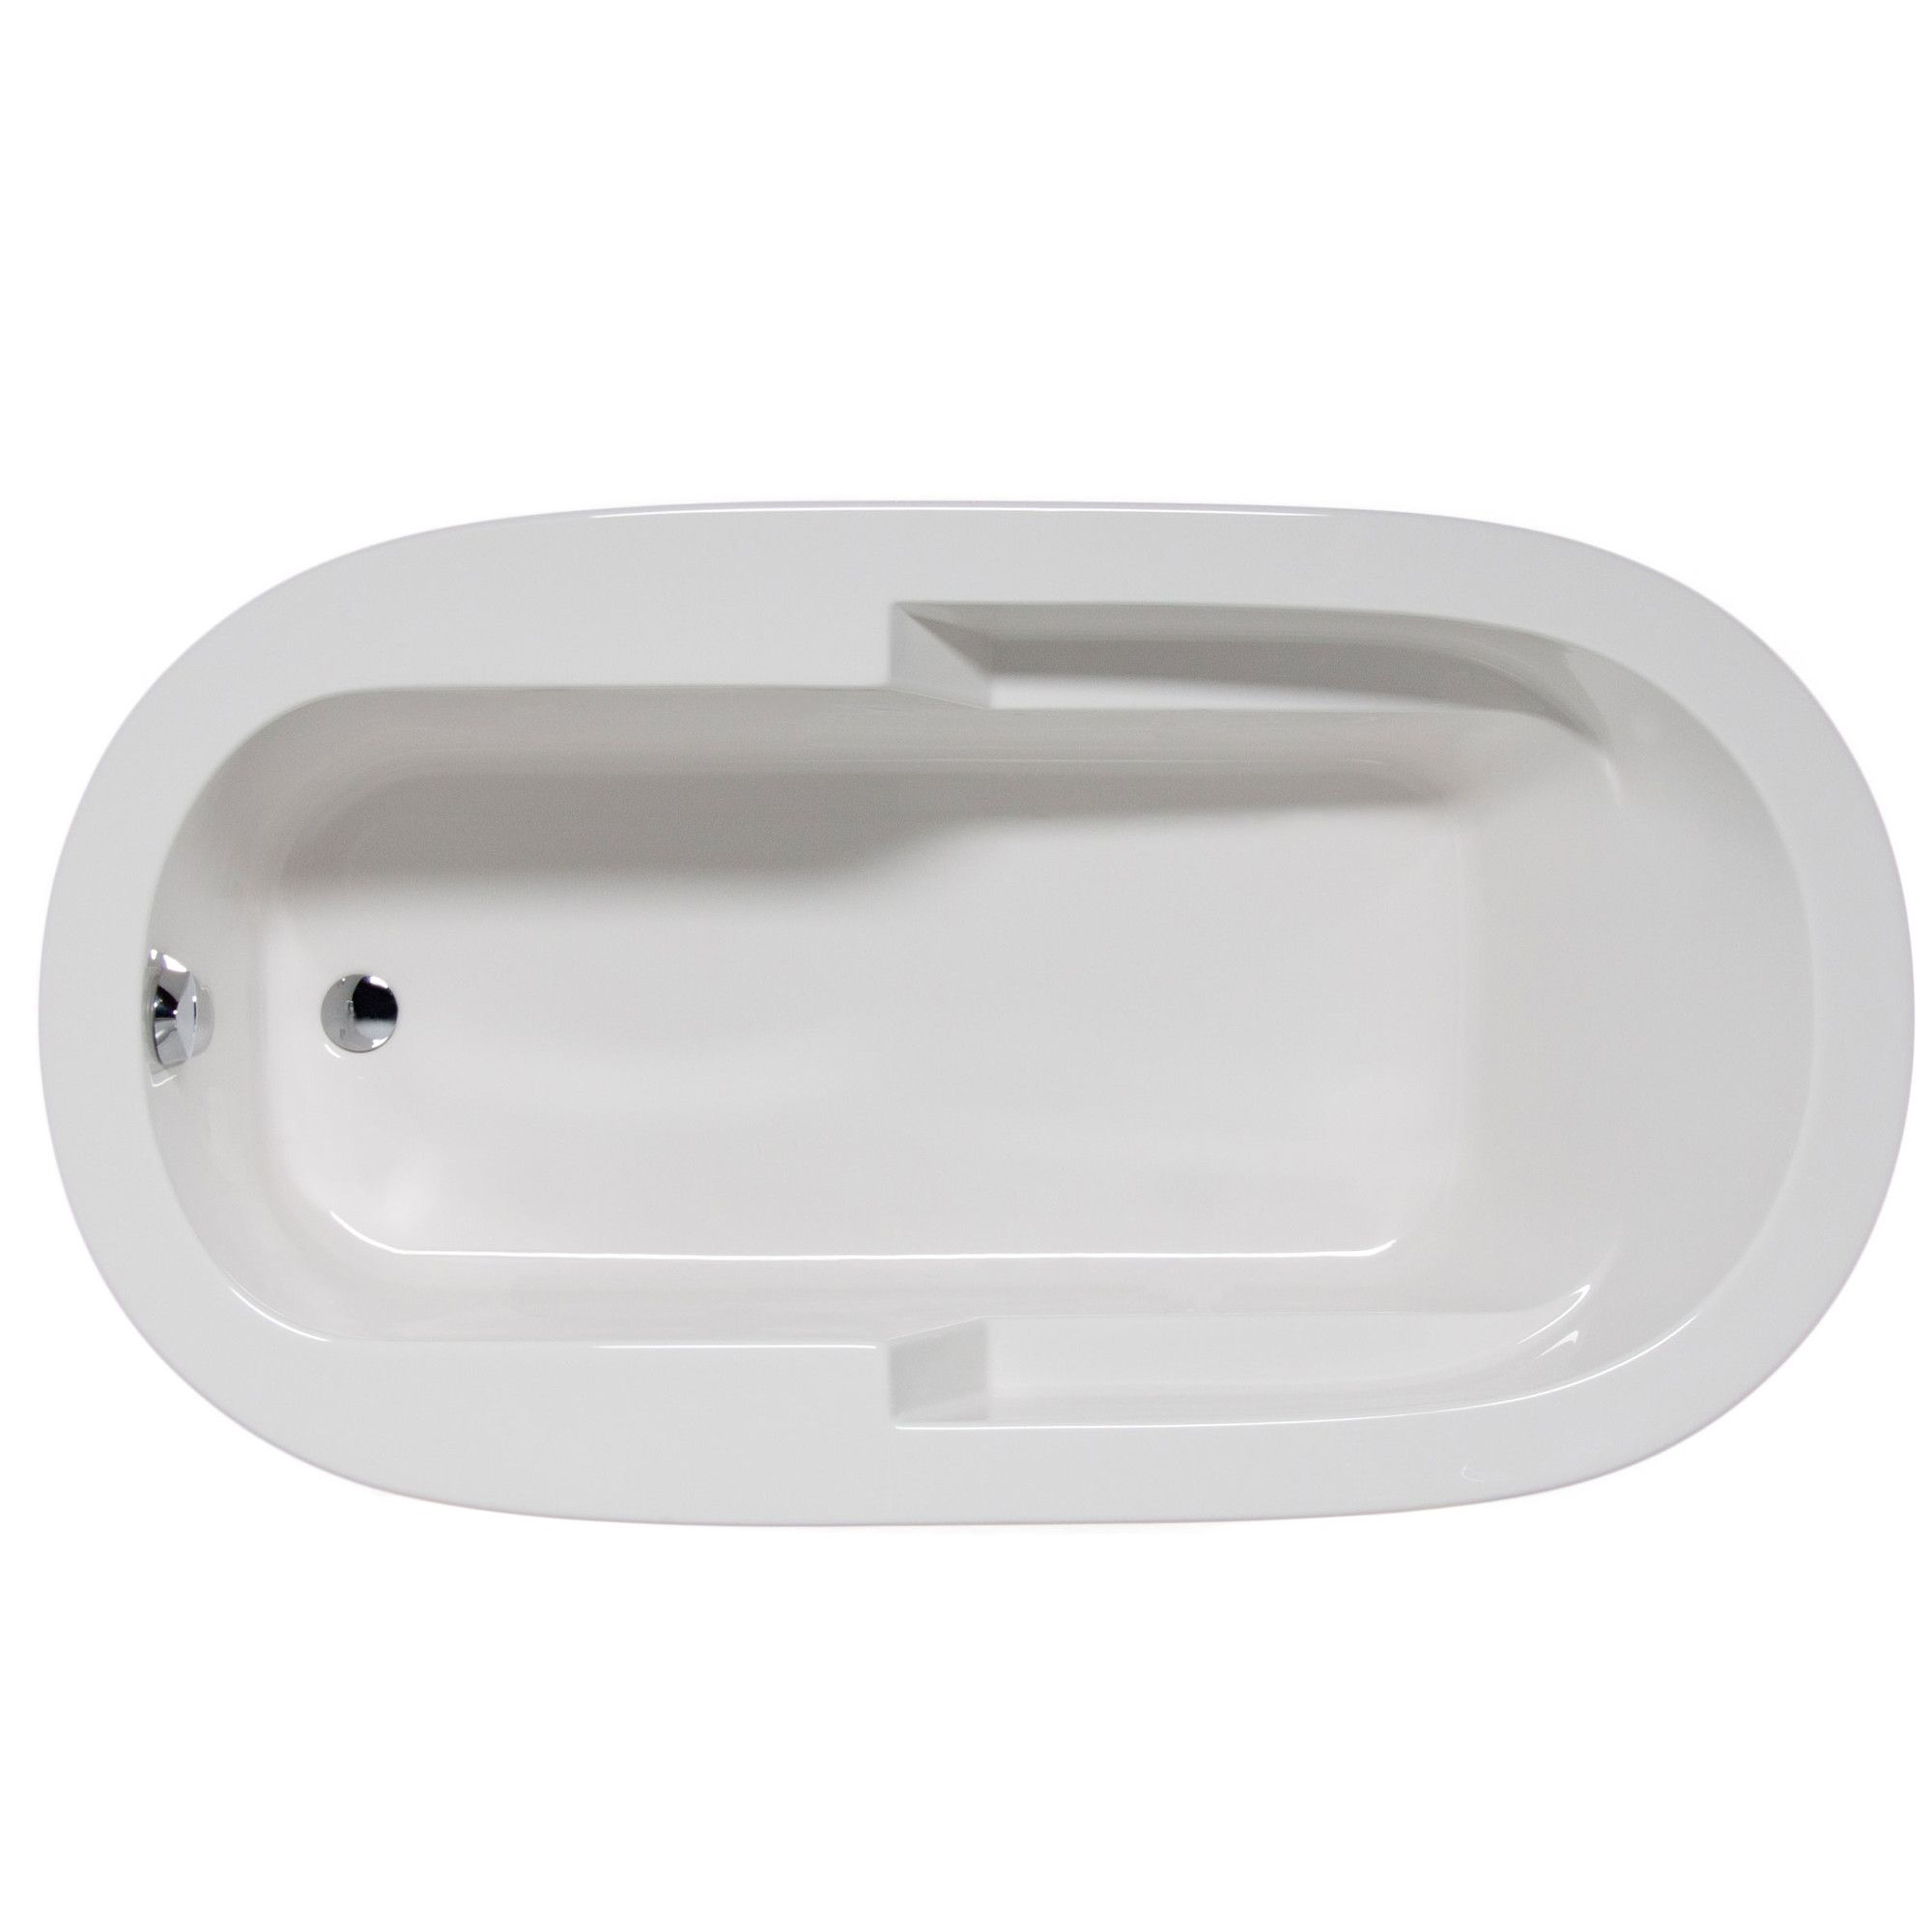 tag jet real tritan tubzz custom product tub tubs jetted rectangle